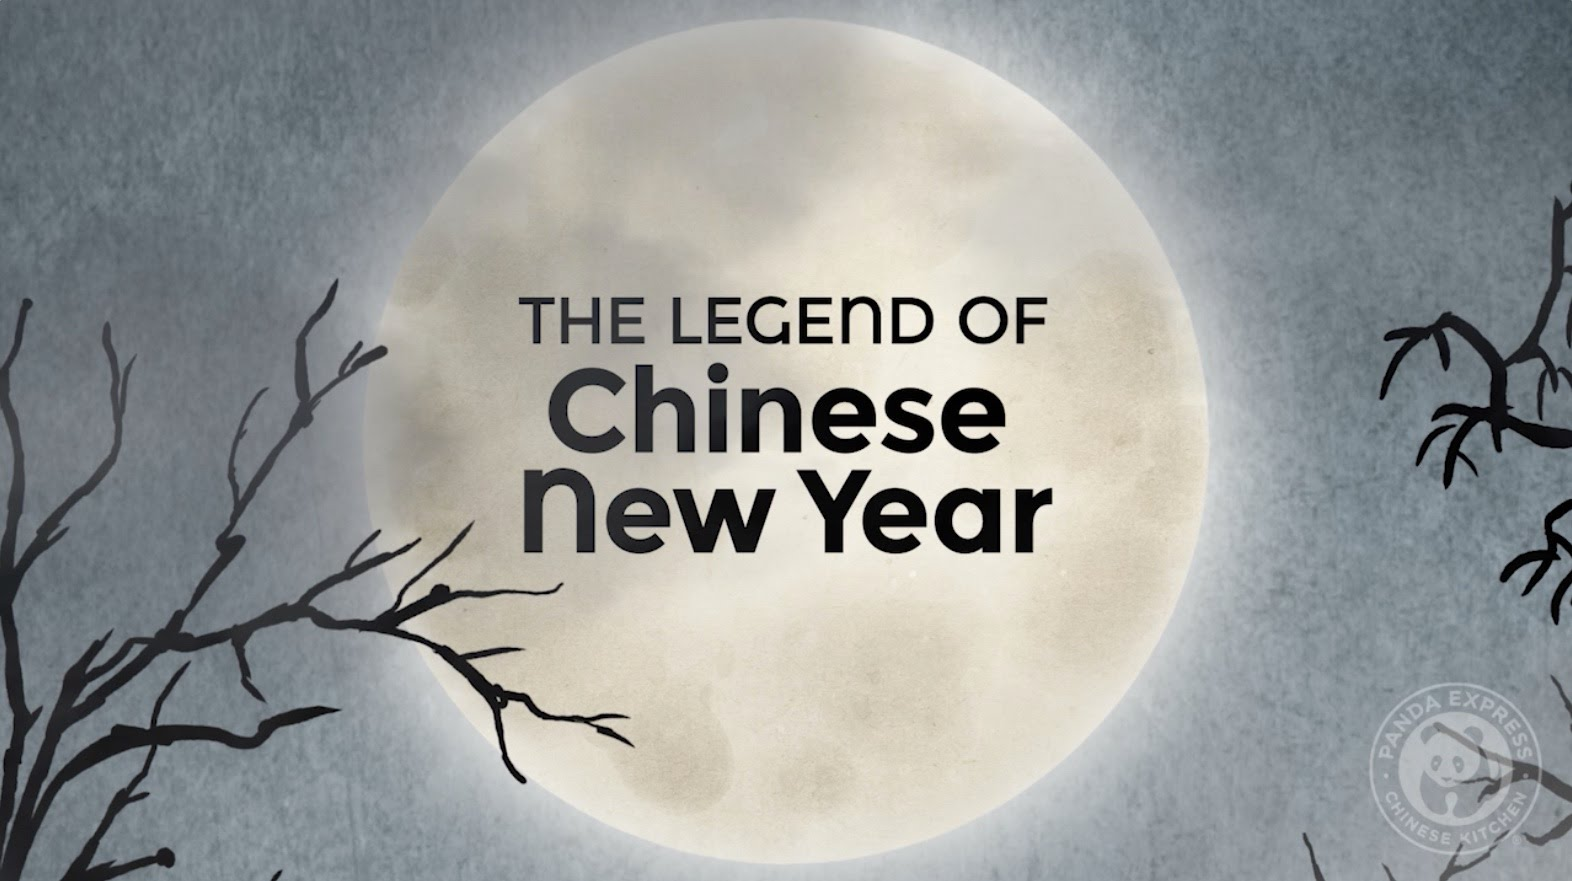 「中國新年的傳說」- The Legend of Chinese New Year